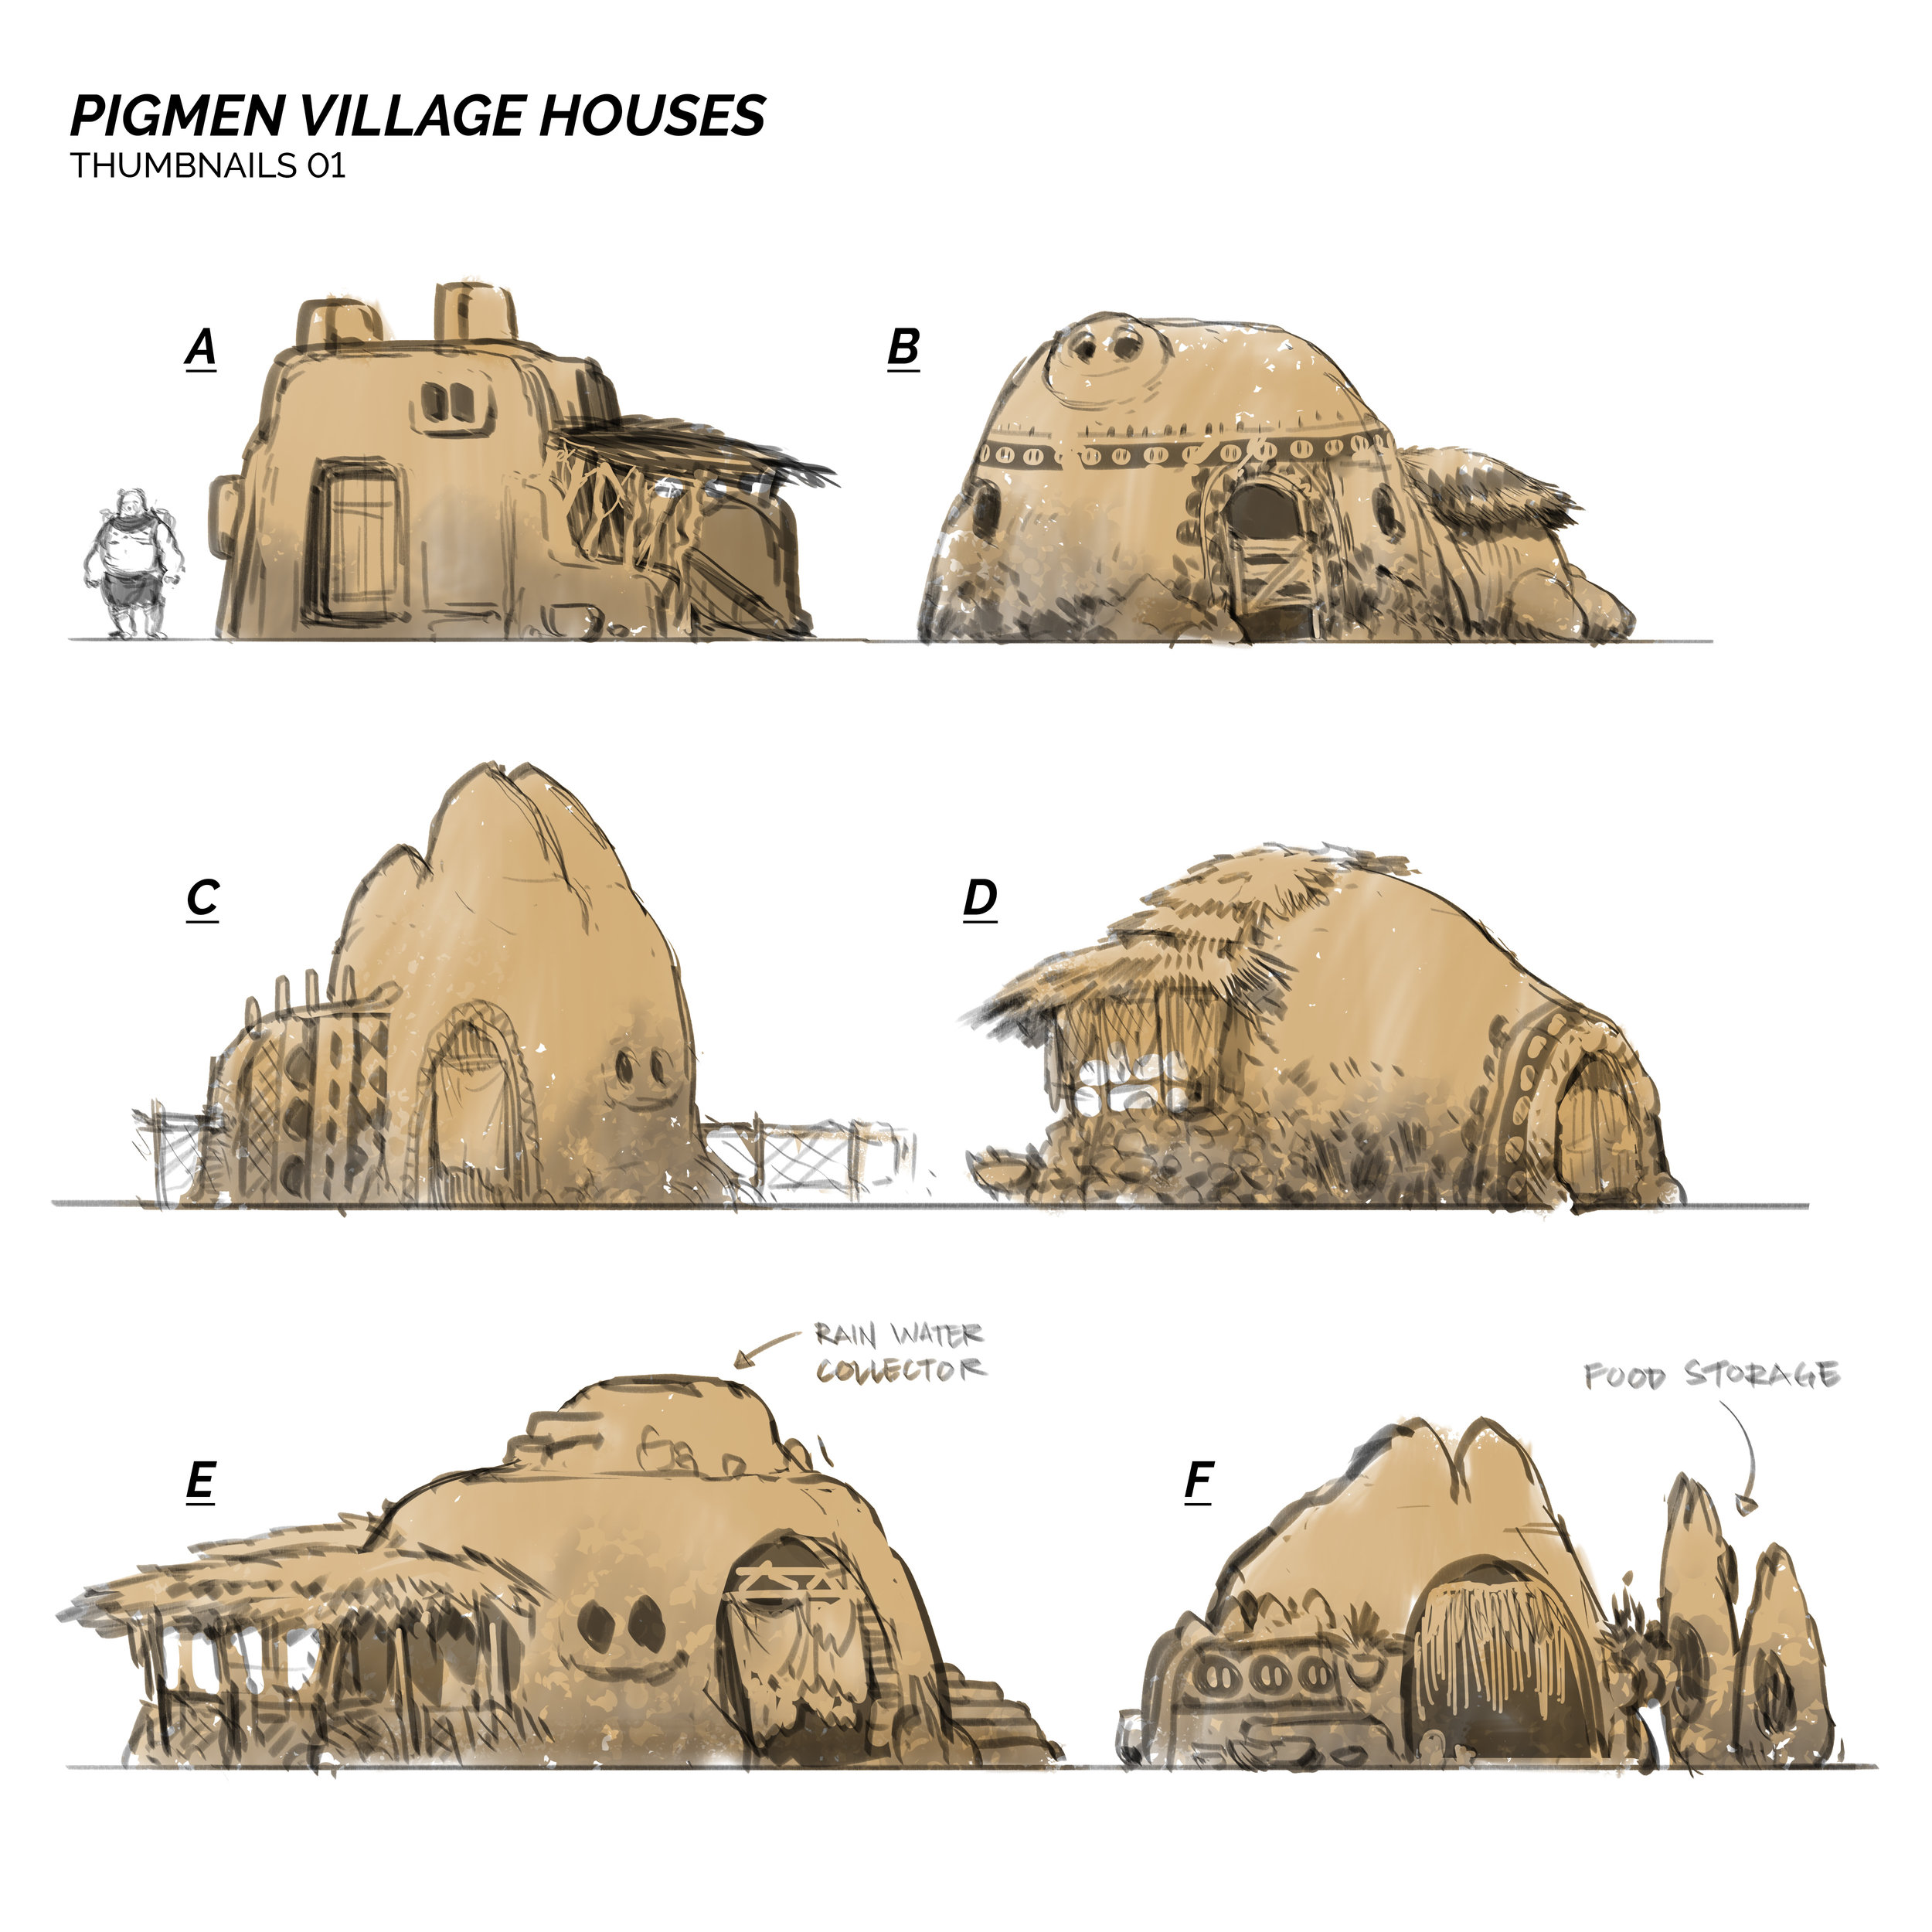 JTTW_PigVillage_House_Exploration_01_Thumbnails_01.jpg